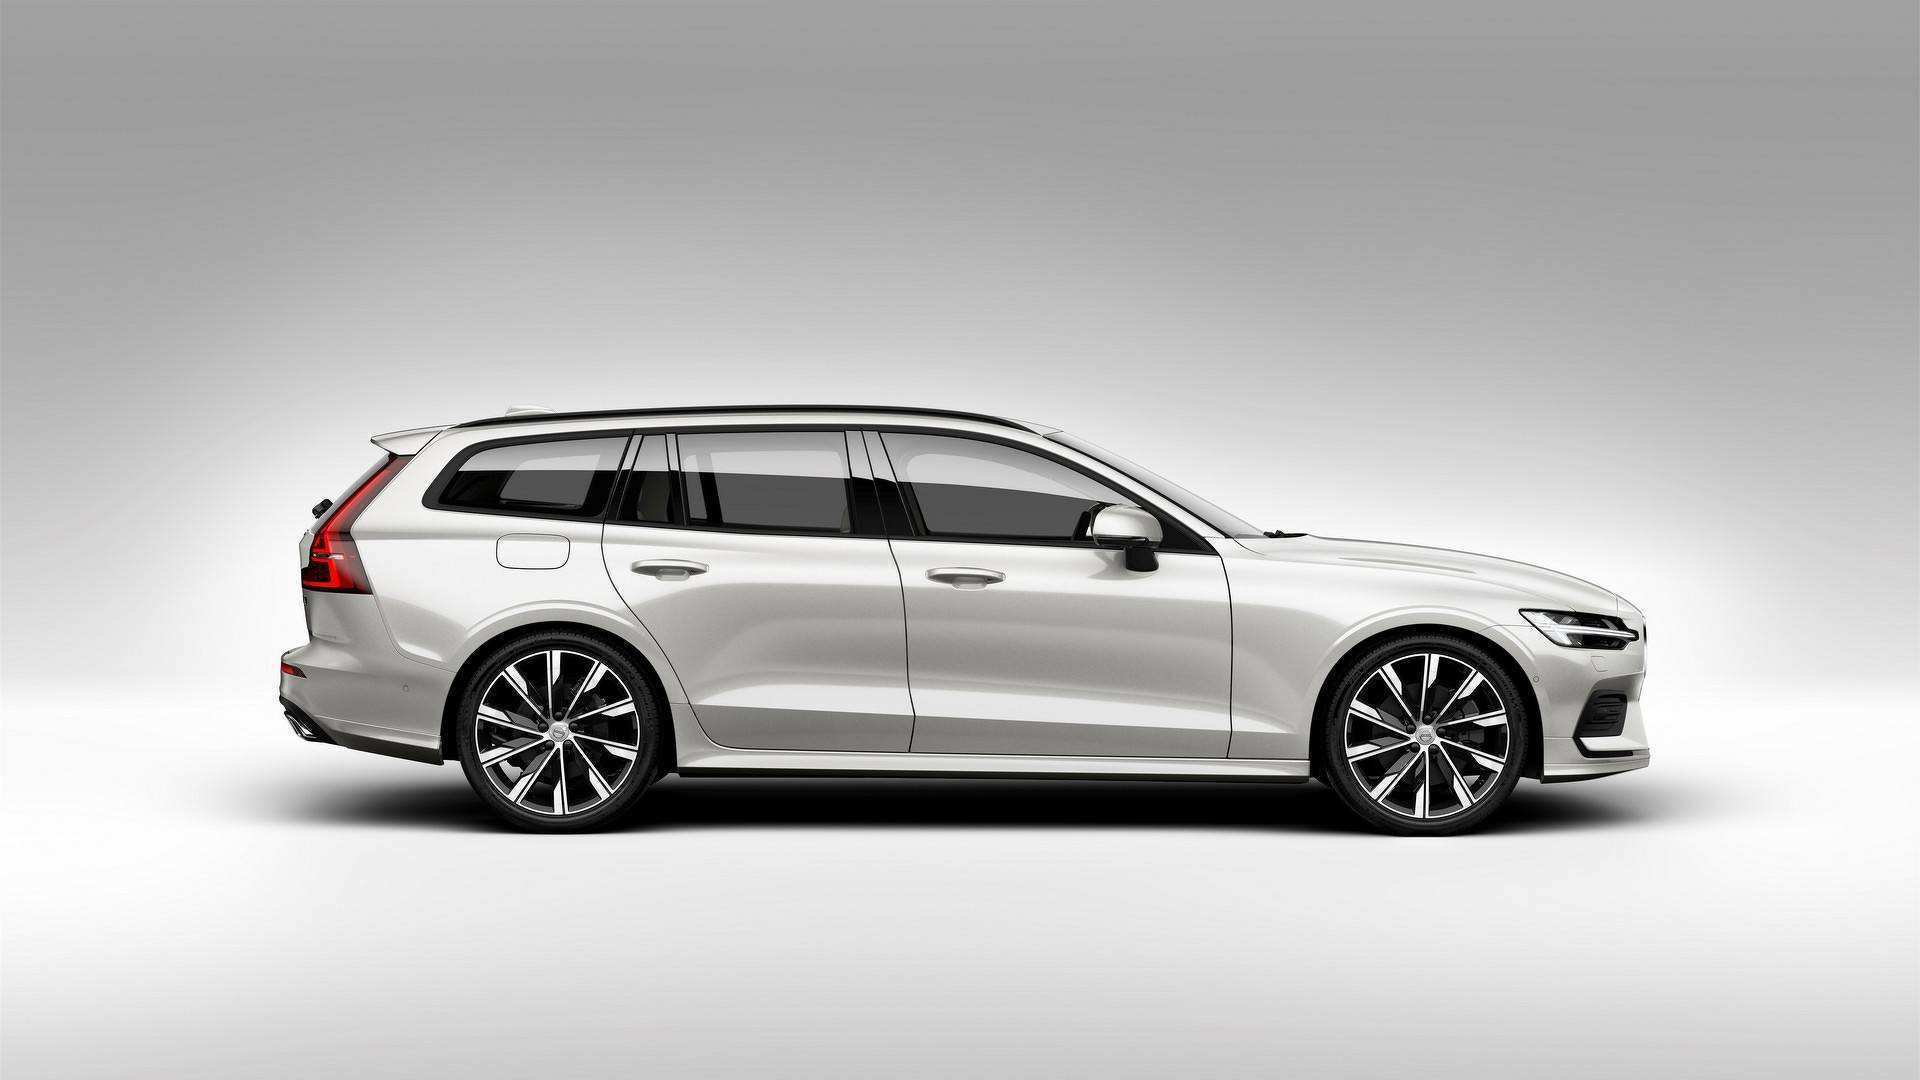 84 The Volvo V60 2019 Dimensions Model